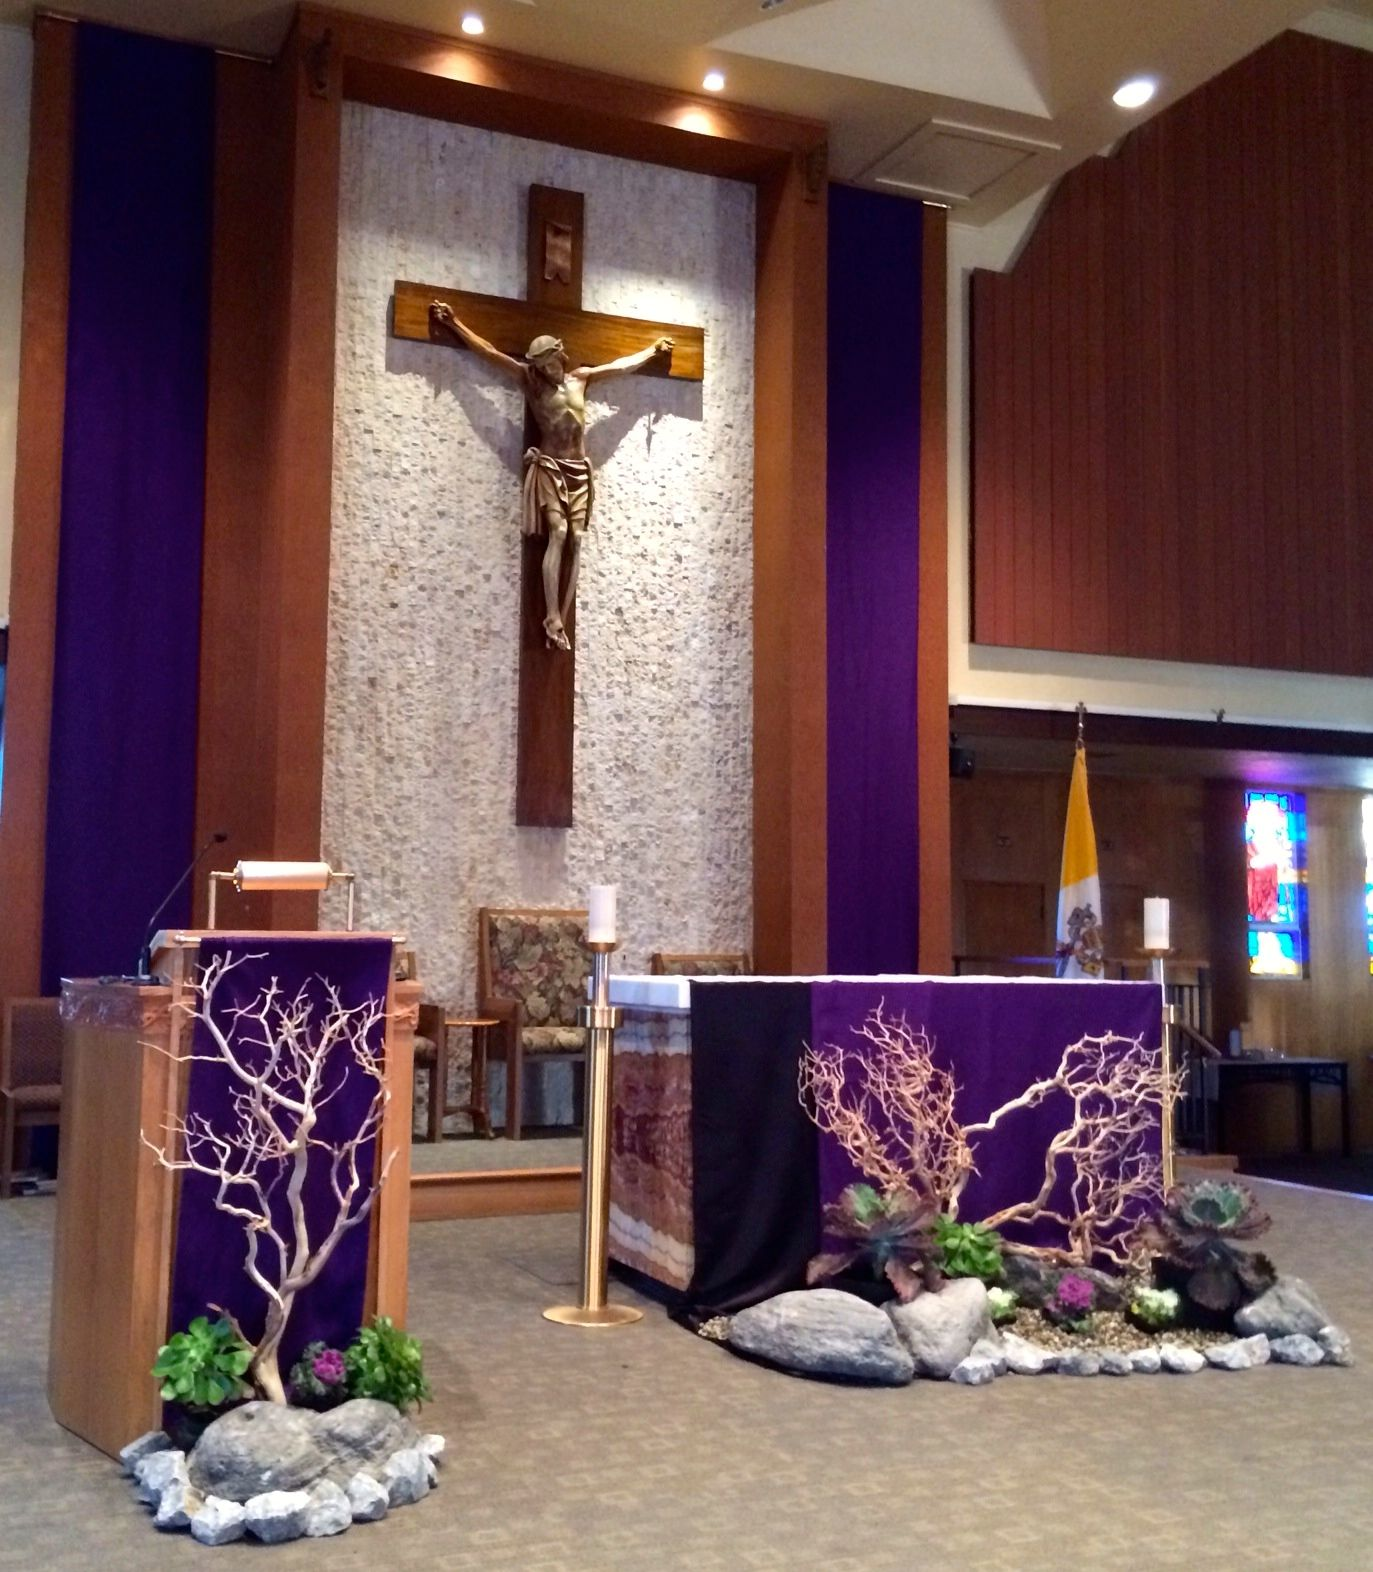 Front Of Church Altar Decorations: Catholic Church Lent Decorations - Bing Images